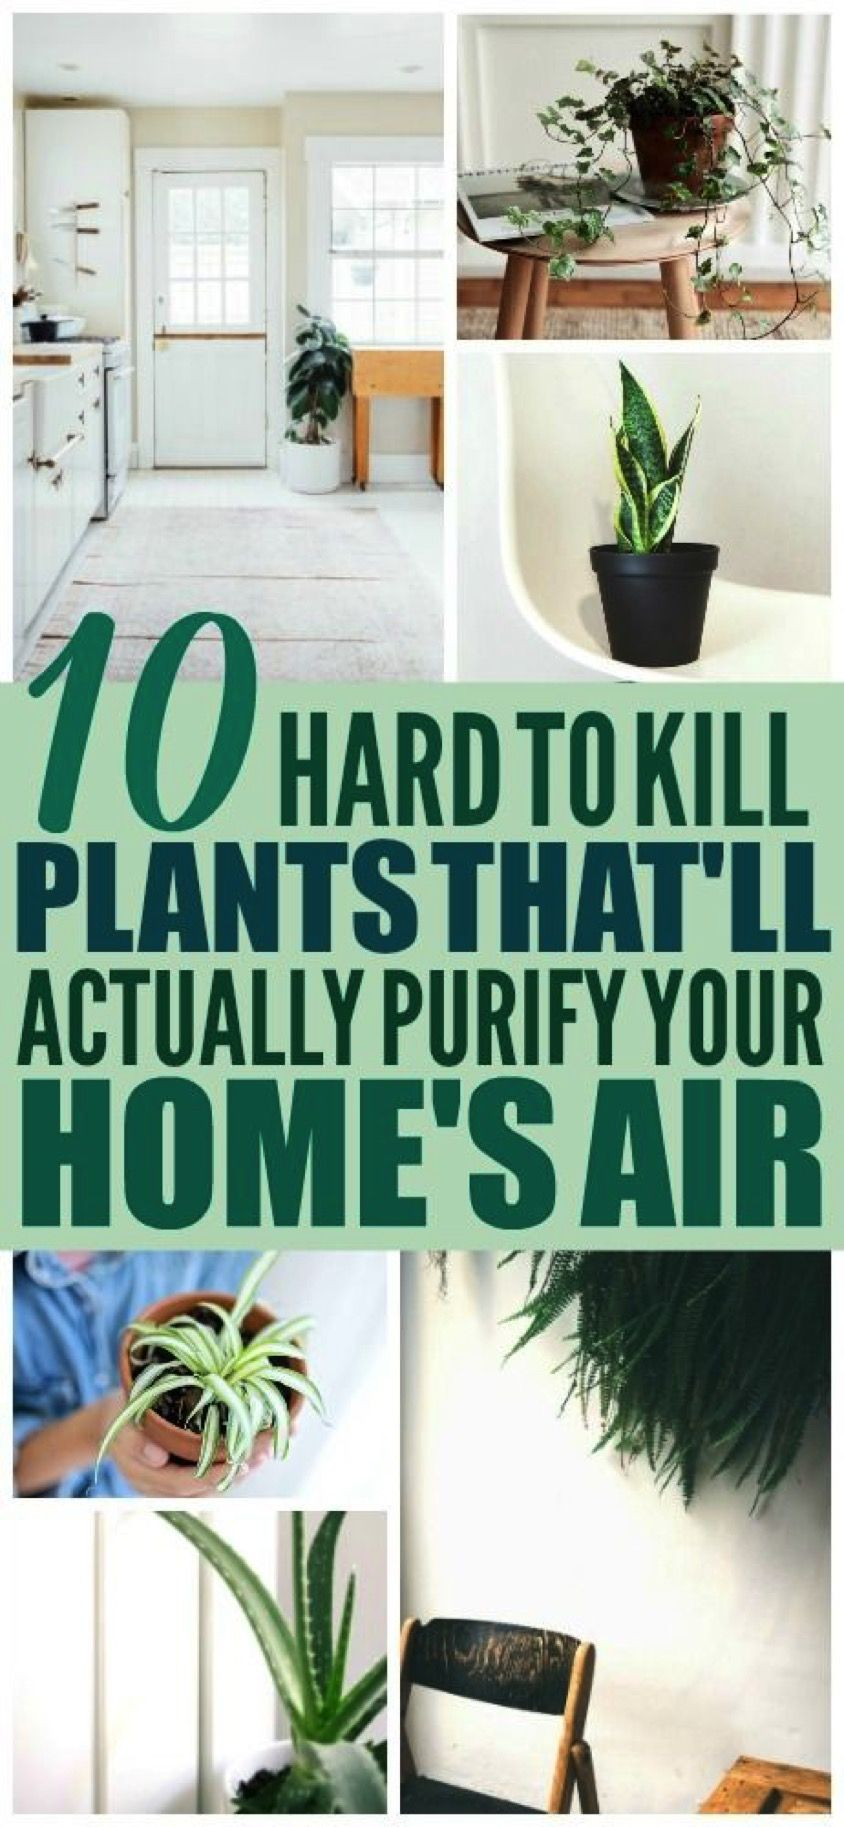 10 Hard To Kill Air Purifying Plants In 2020 Air Purifying Plants Plants Air Purifier